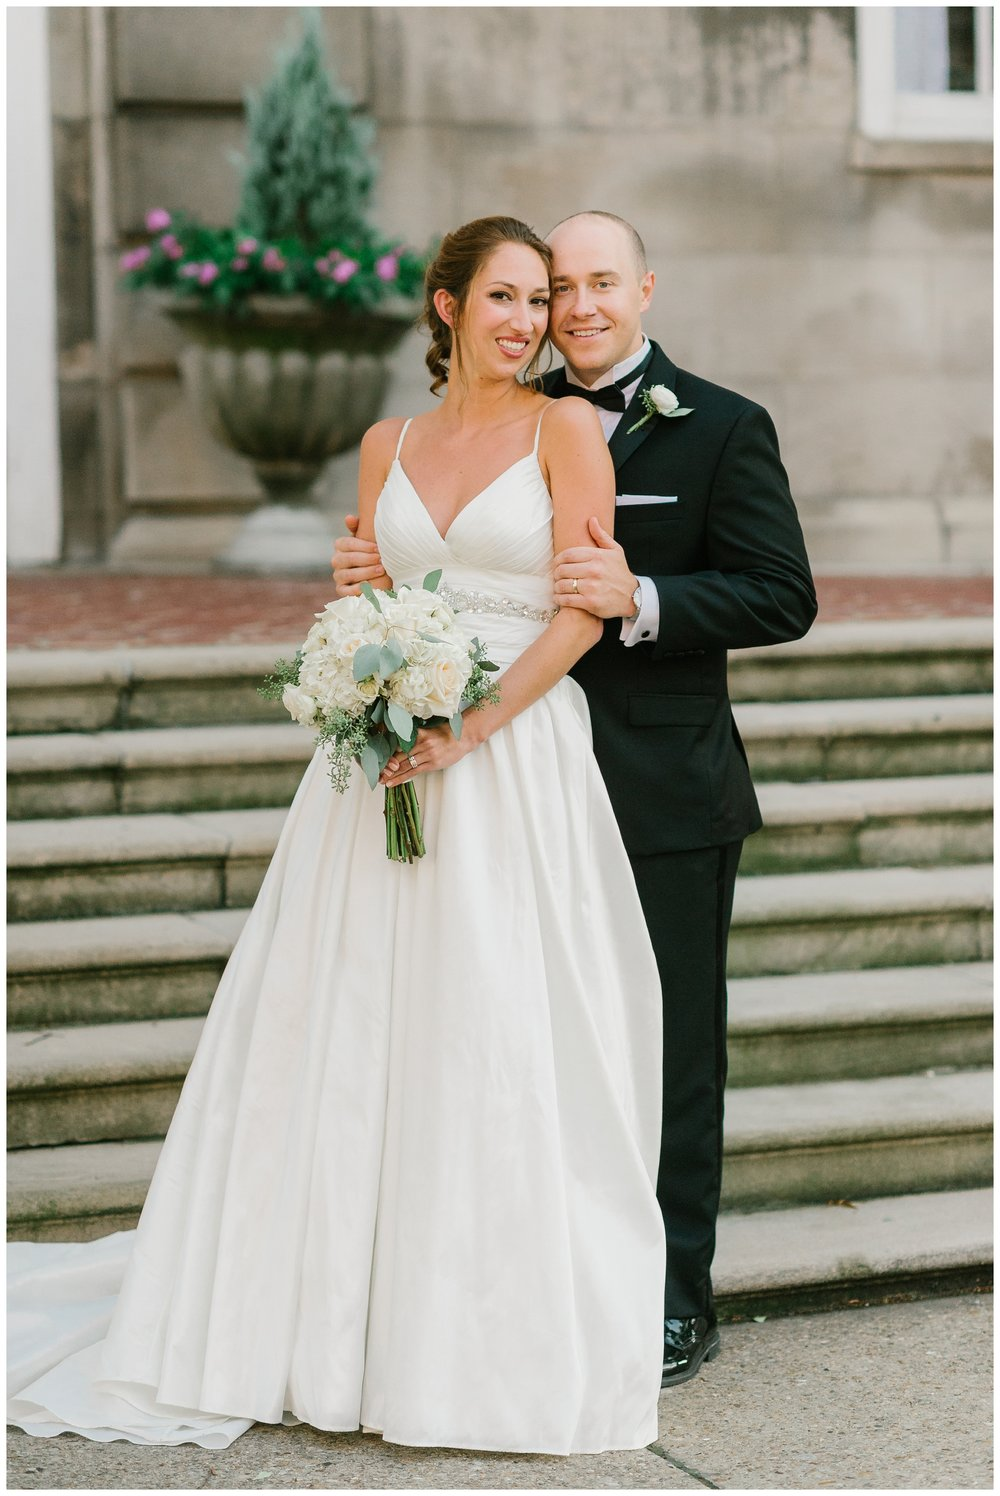 Rebecca_Shehorn_Photography_Indianapolis_Wedding_Photographer_7166.jpg